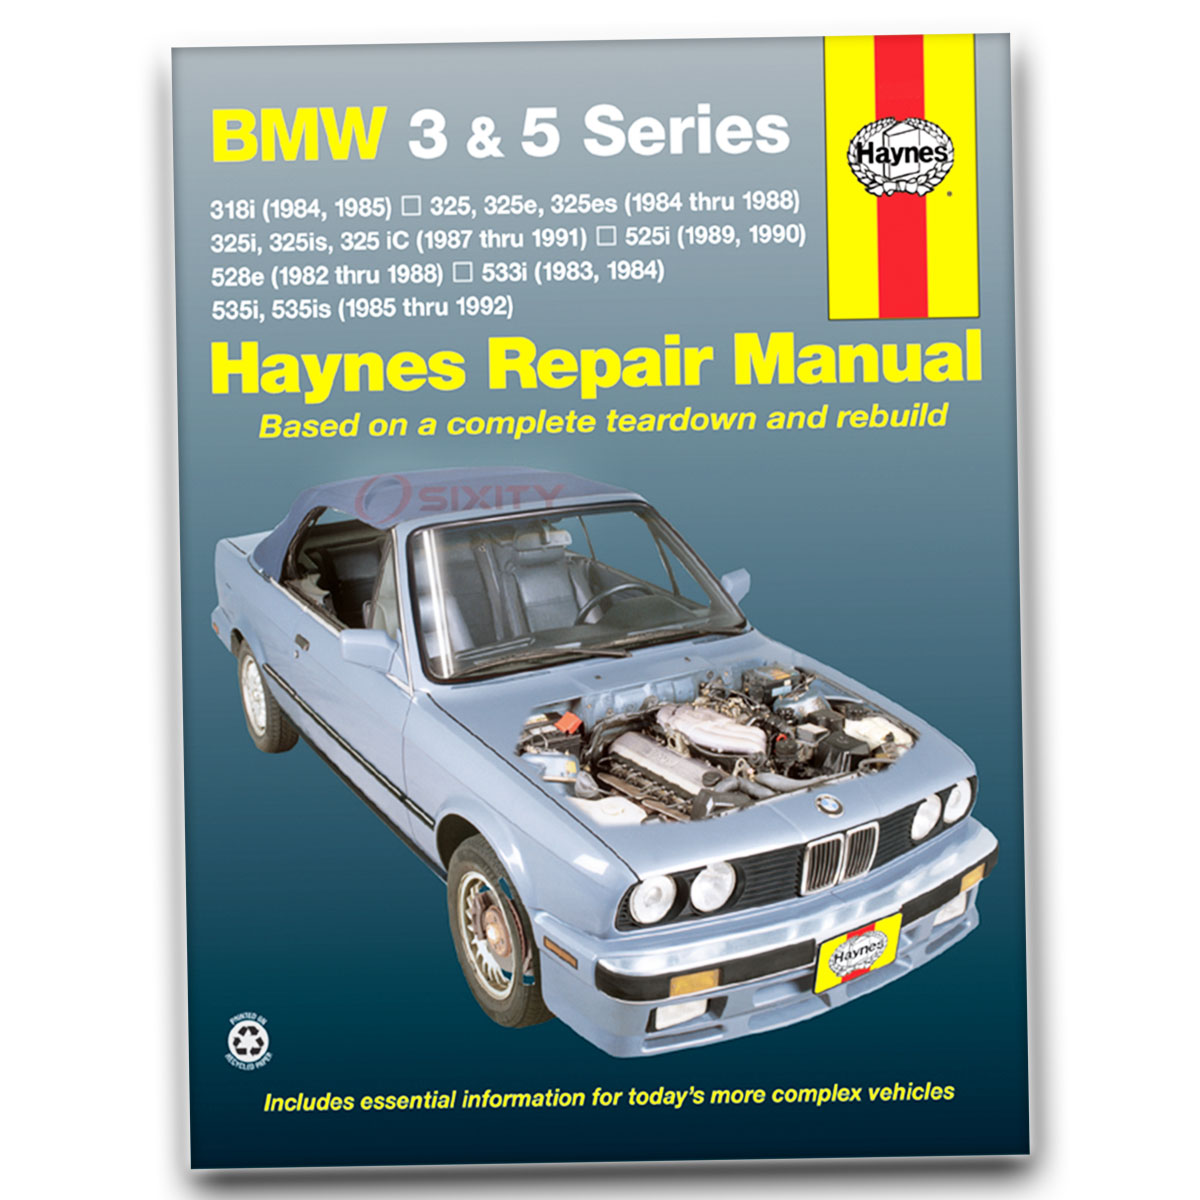 Haynes Repair Manual for BMW 325i Base Shop Service Garage Book nd